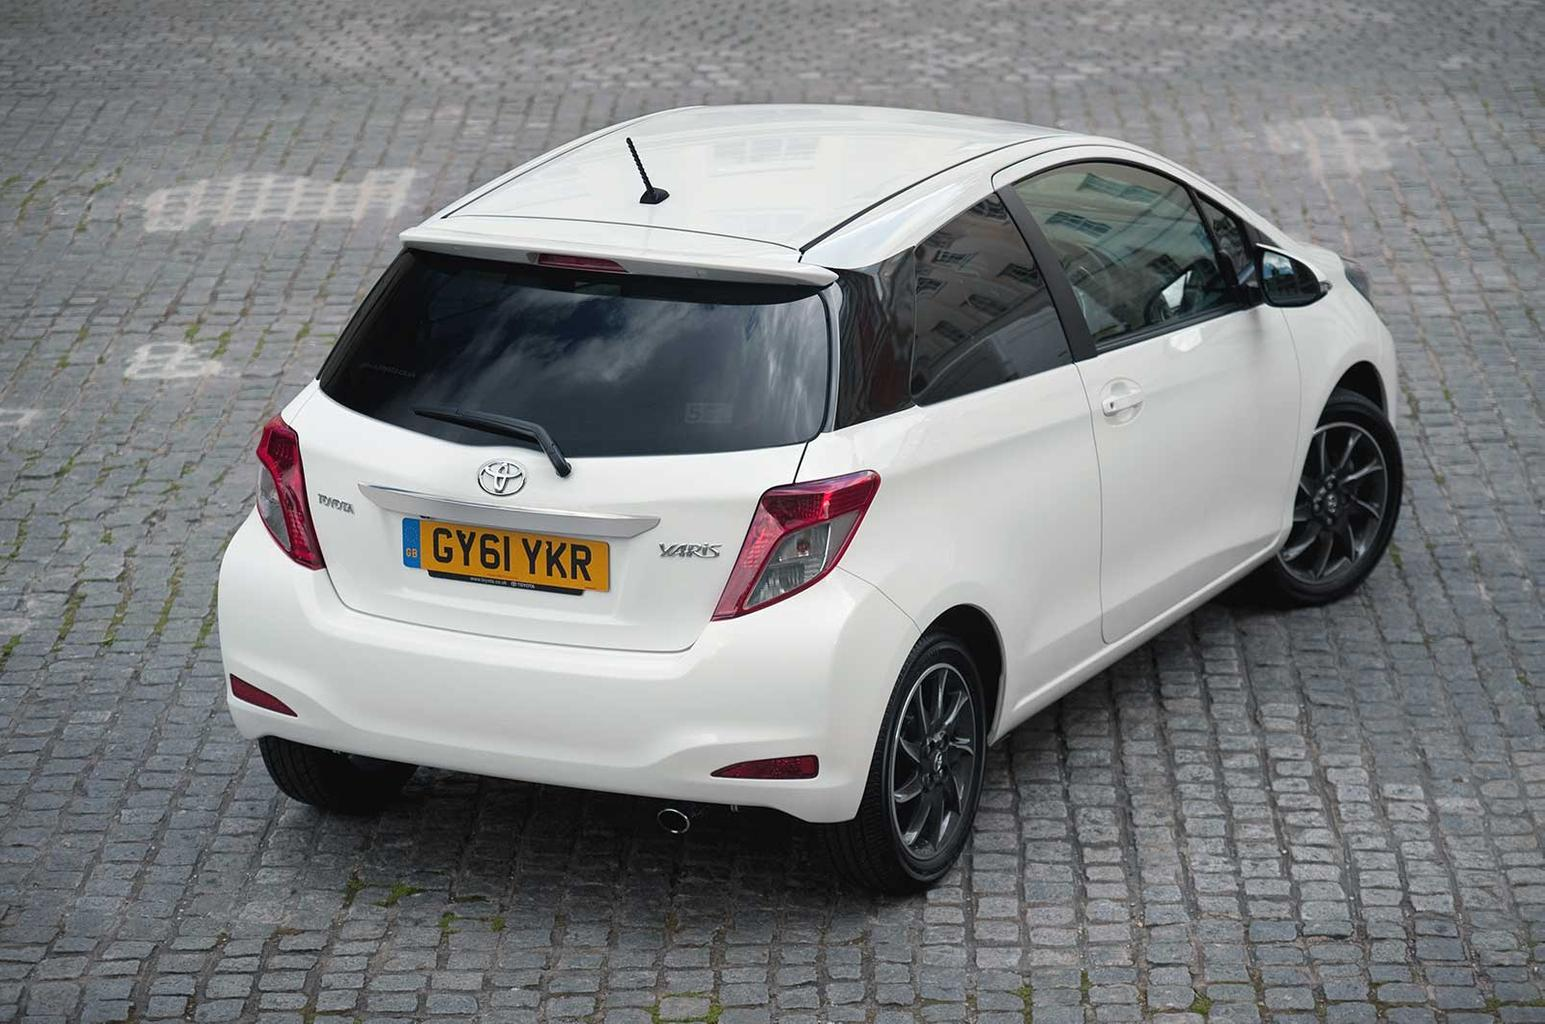 Used car of the week - Toyota Yaris